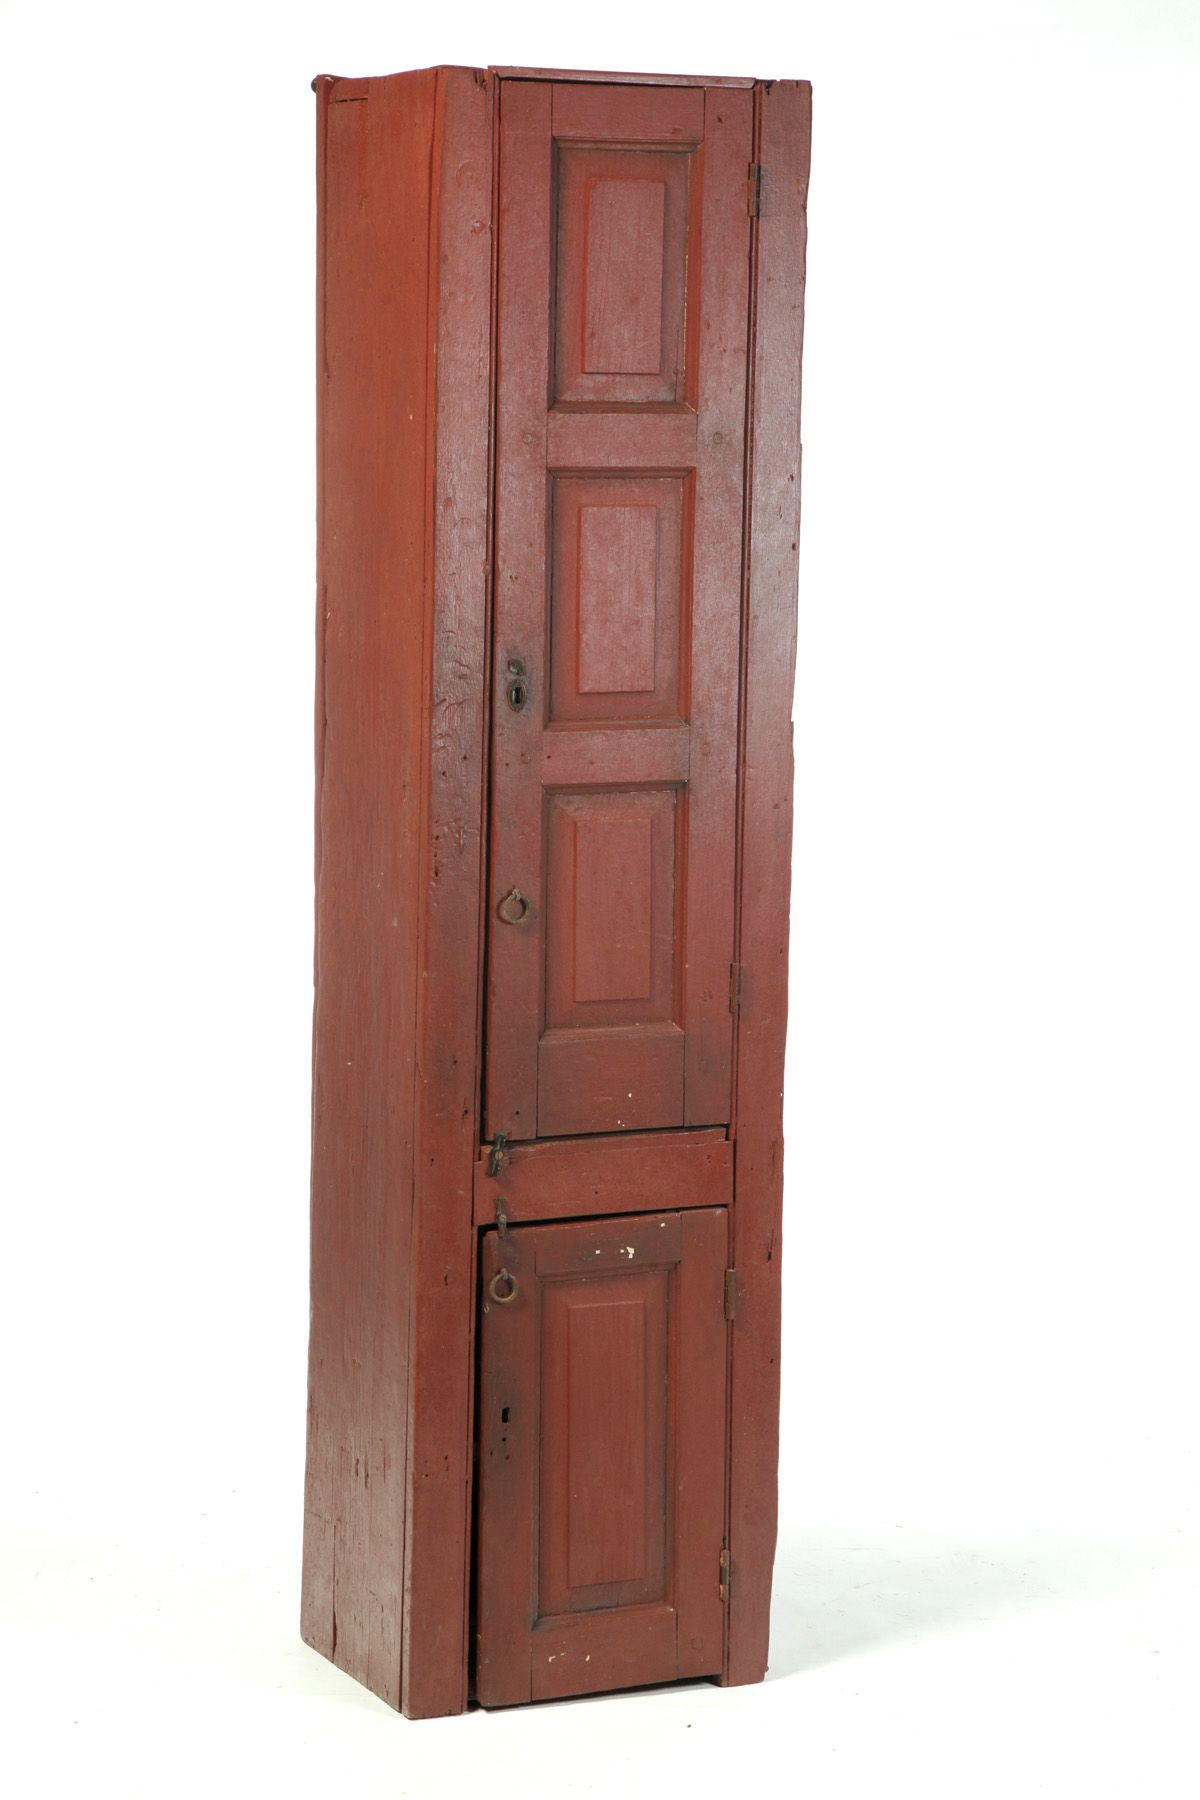 AMERICAN PAINTED CHIMNEY CUPBOARD. Attributed To The Shakers, 19th Century,  Pine. One Piece Cupboard With Two Raised Panel Doors, And Red Paint.